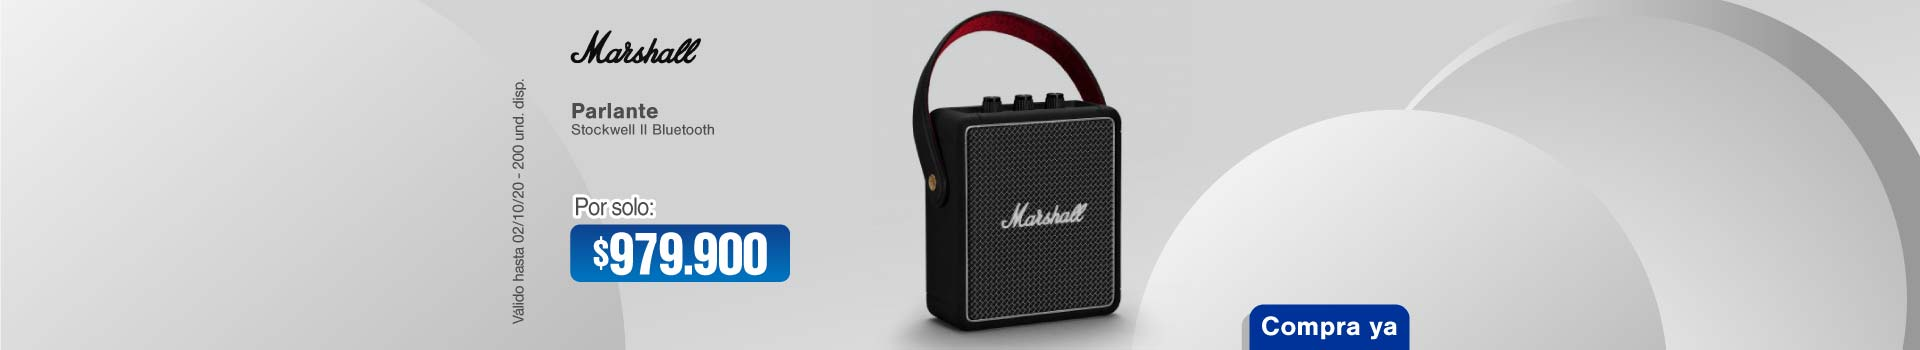 AK-ACCESORIOS-BCAT3-MARSHALL-STOCKWELL-25SEPTIEMBRE2020